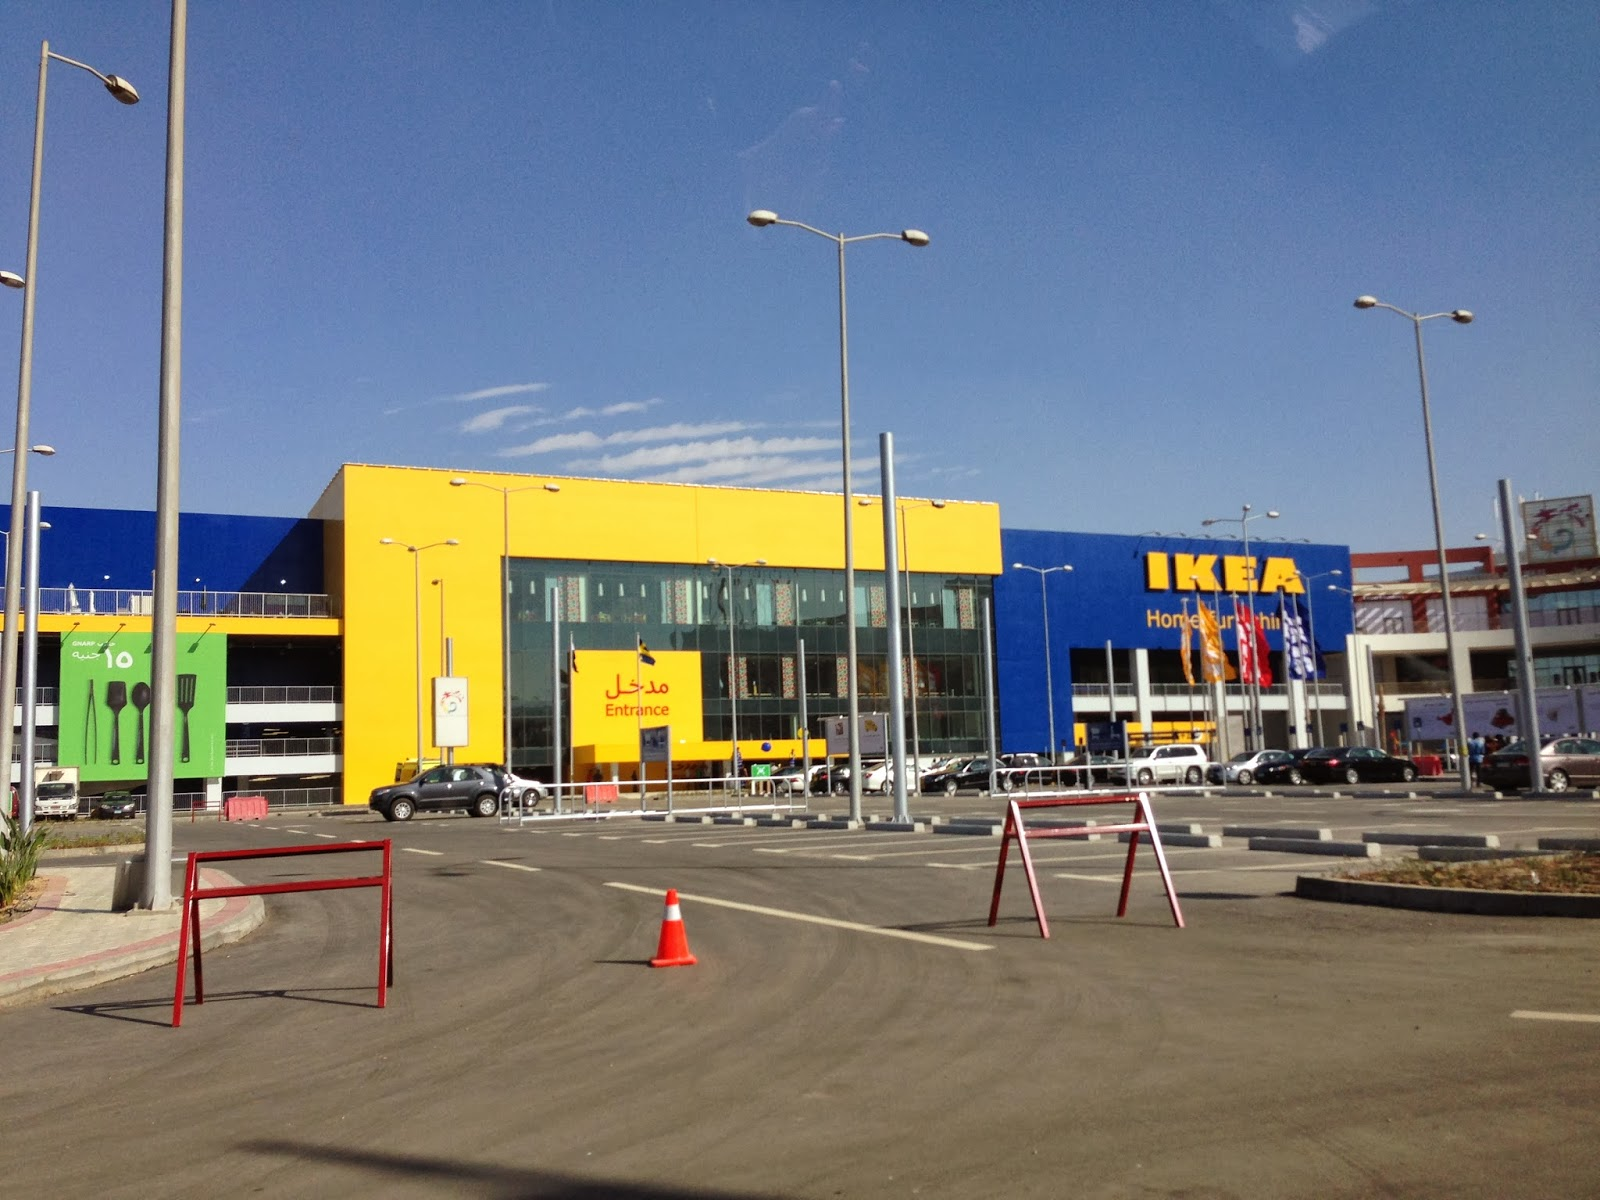 ikea cairo egypt ikea cairo festival city mall. Black Bedroom Furniture Sets. Home Design Ideas